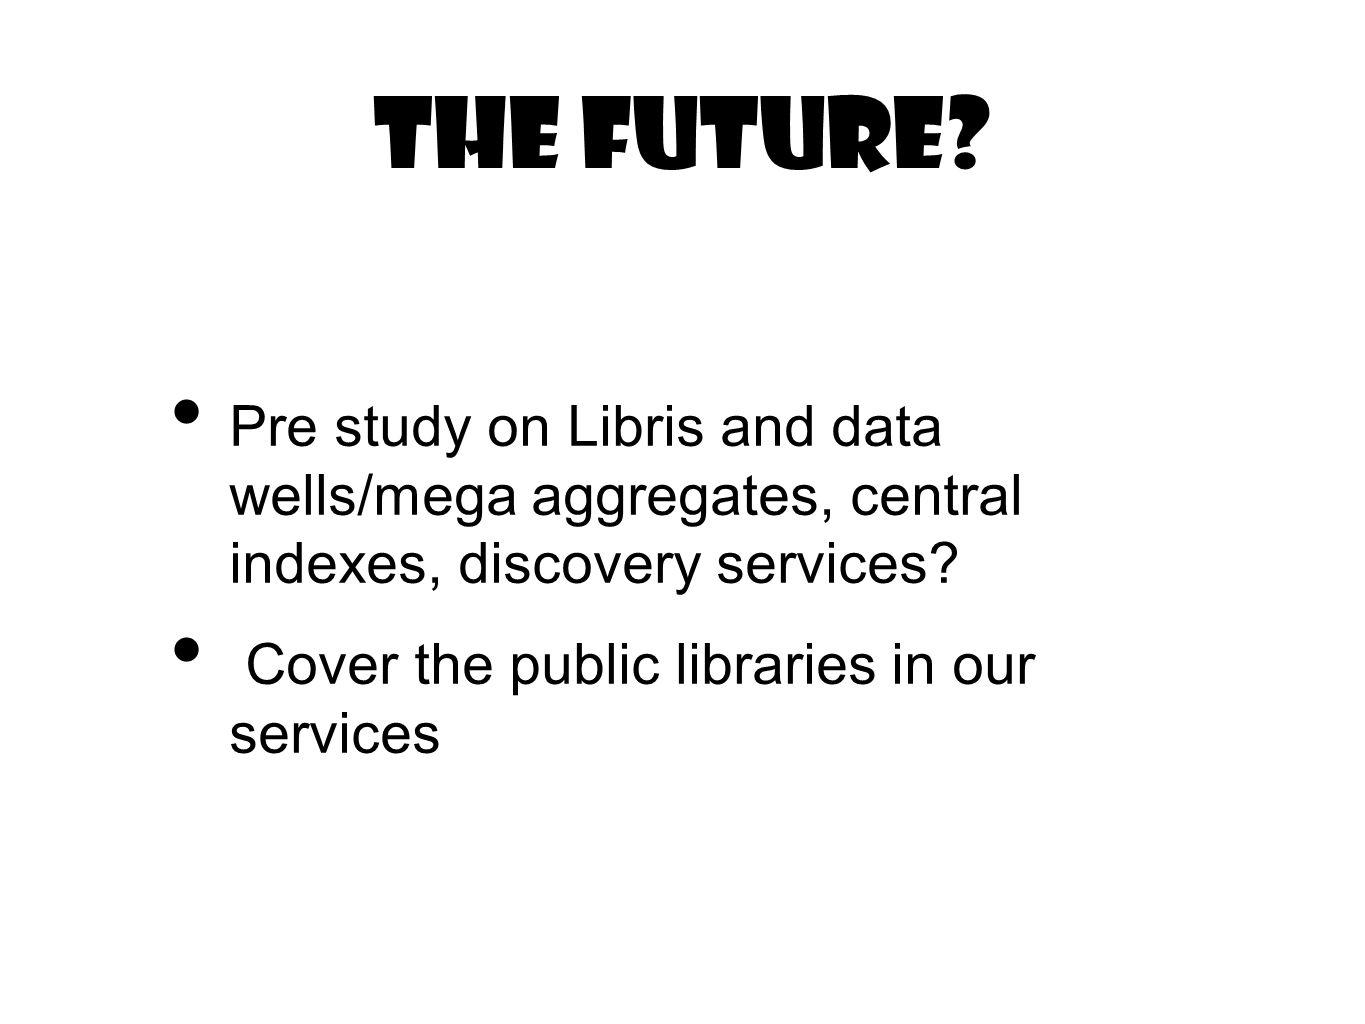 The future? Pre study on Libris and data wells/mega aggregates, central indexes, discovery services? Cover the public libraries in our services